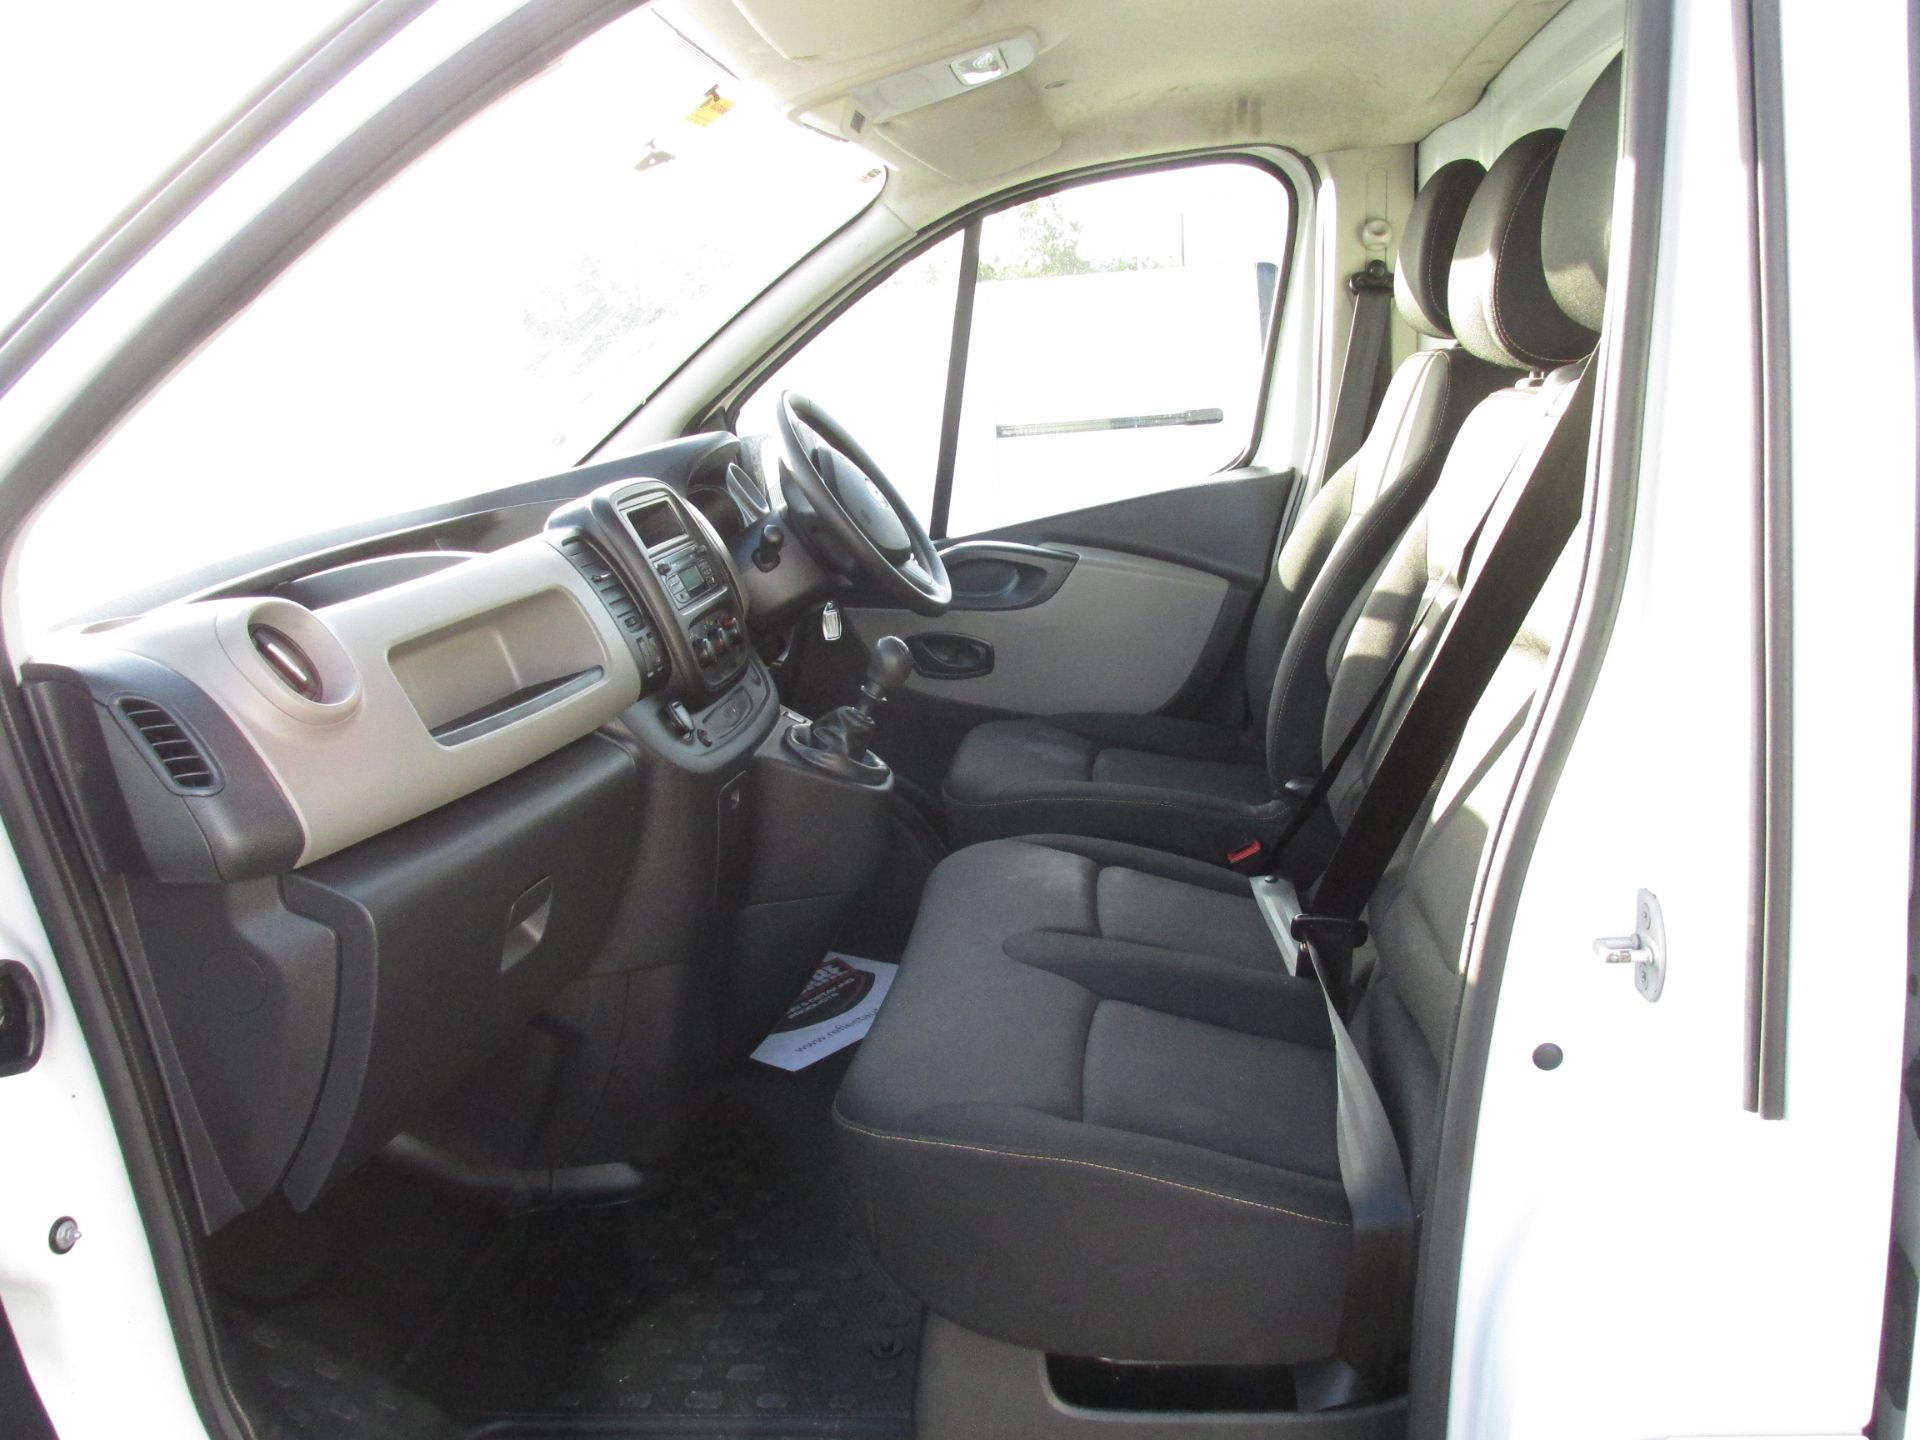 2017 Renault Trafic LL29 DCI 120 Business 3DR (171D35400) Image 11